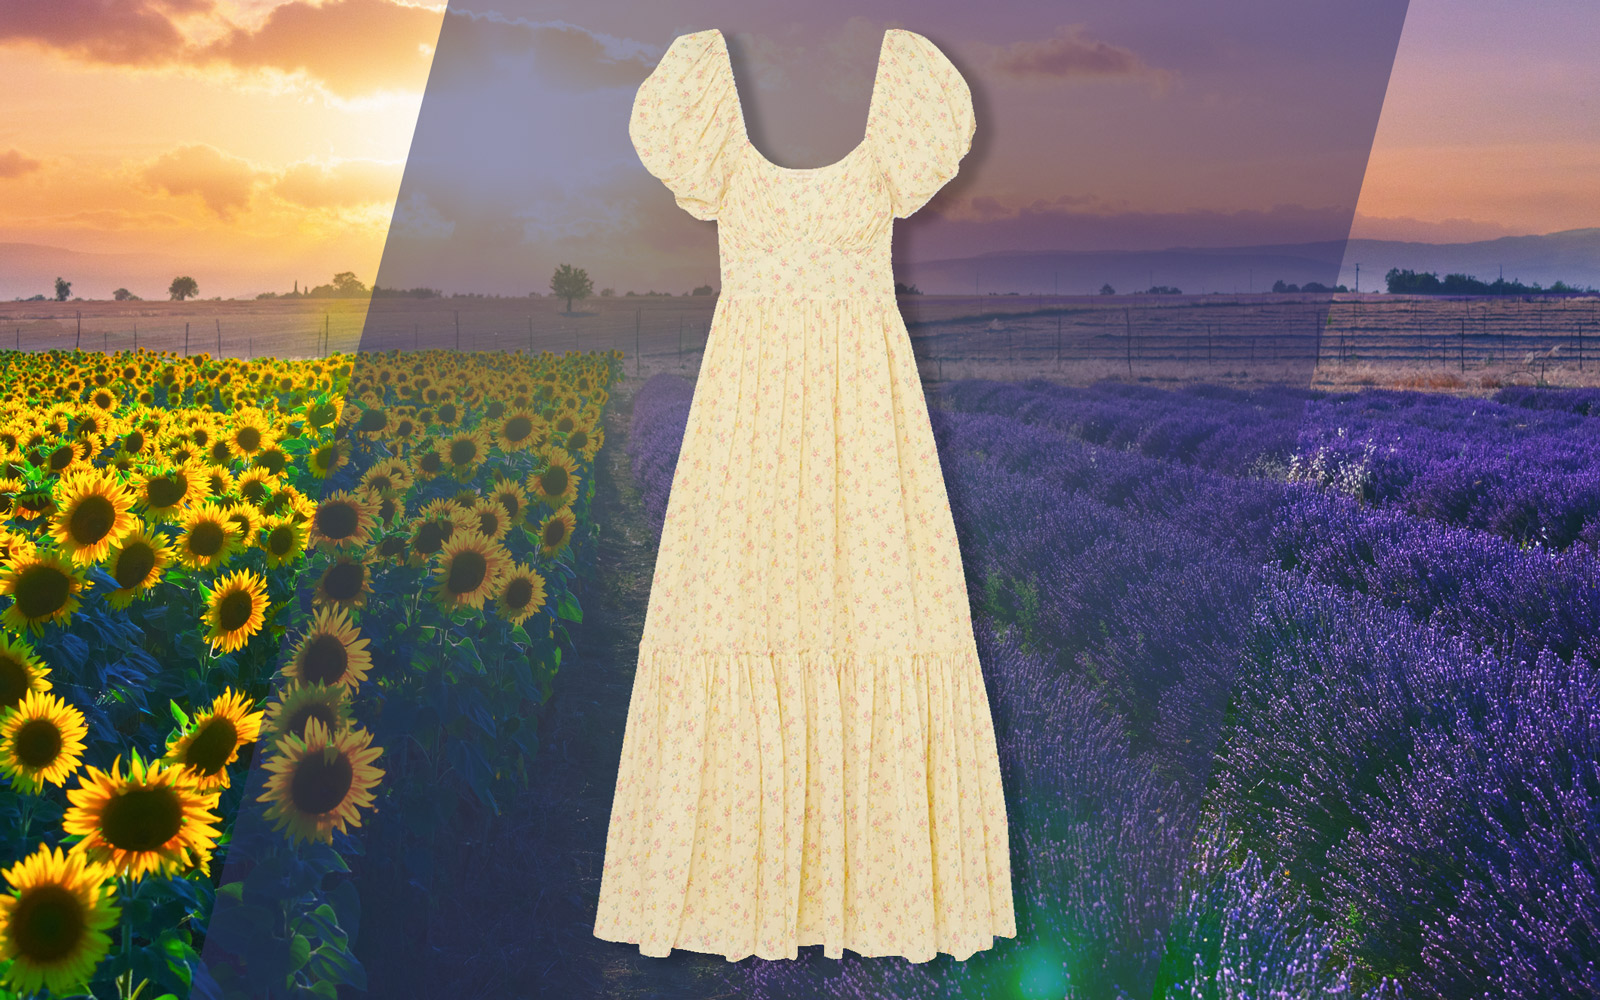 This Prairie Dress Makes for an Unexpectedly Perfect Travel Uniform